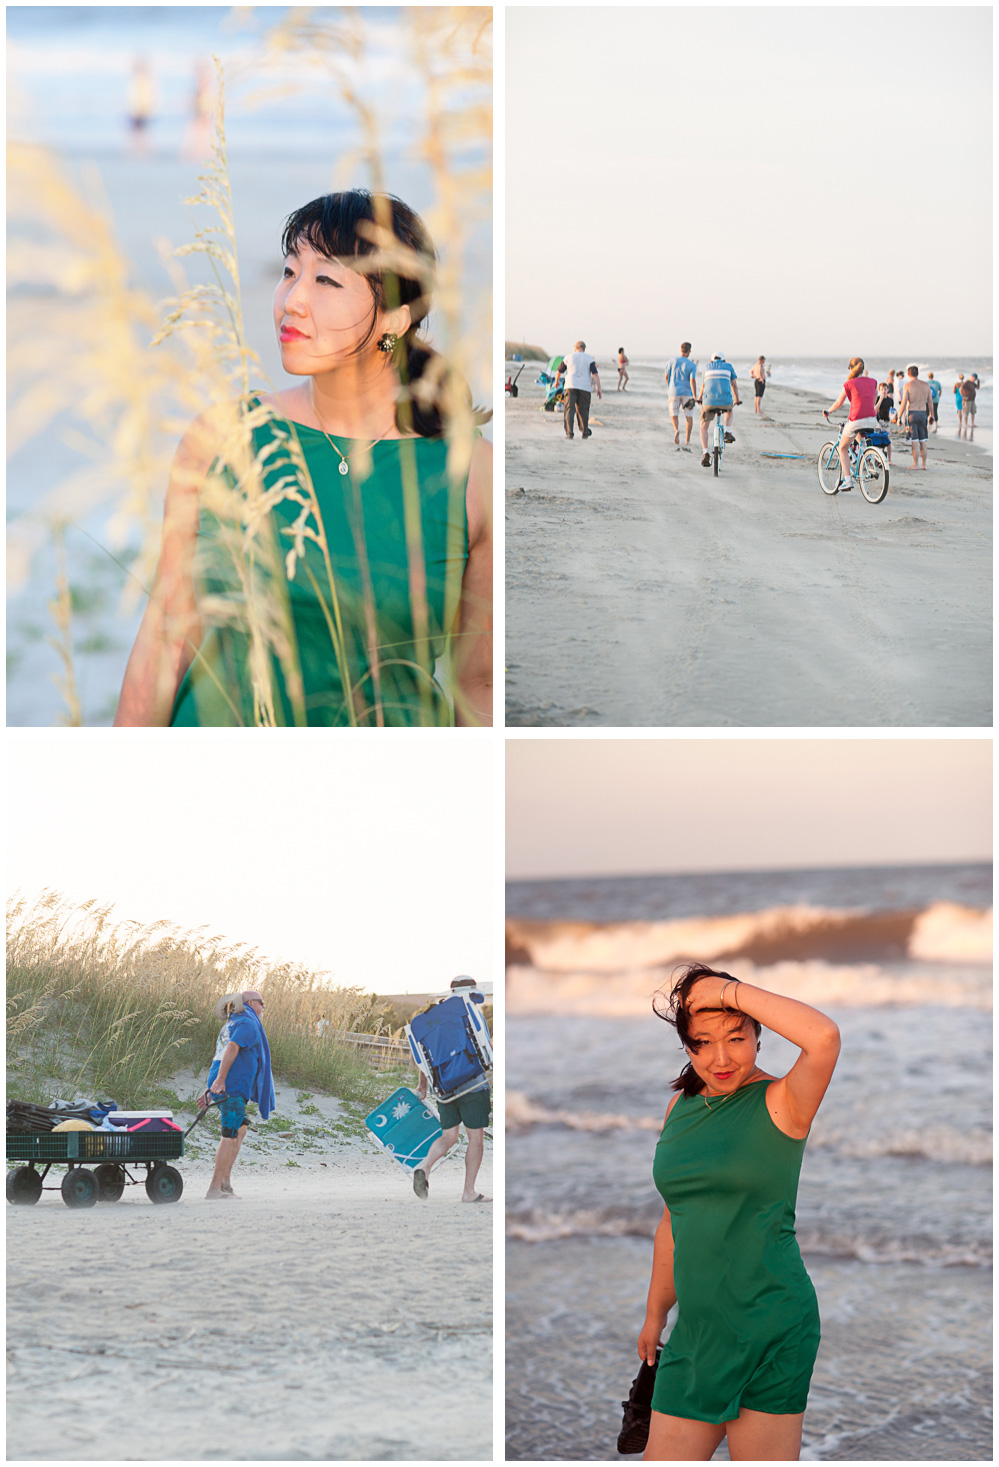 Four photos of Dannie exploring the beach on Tybee Island before sunset